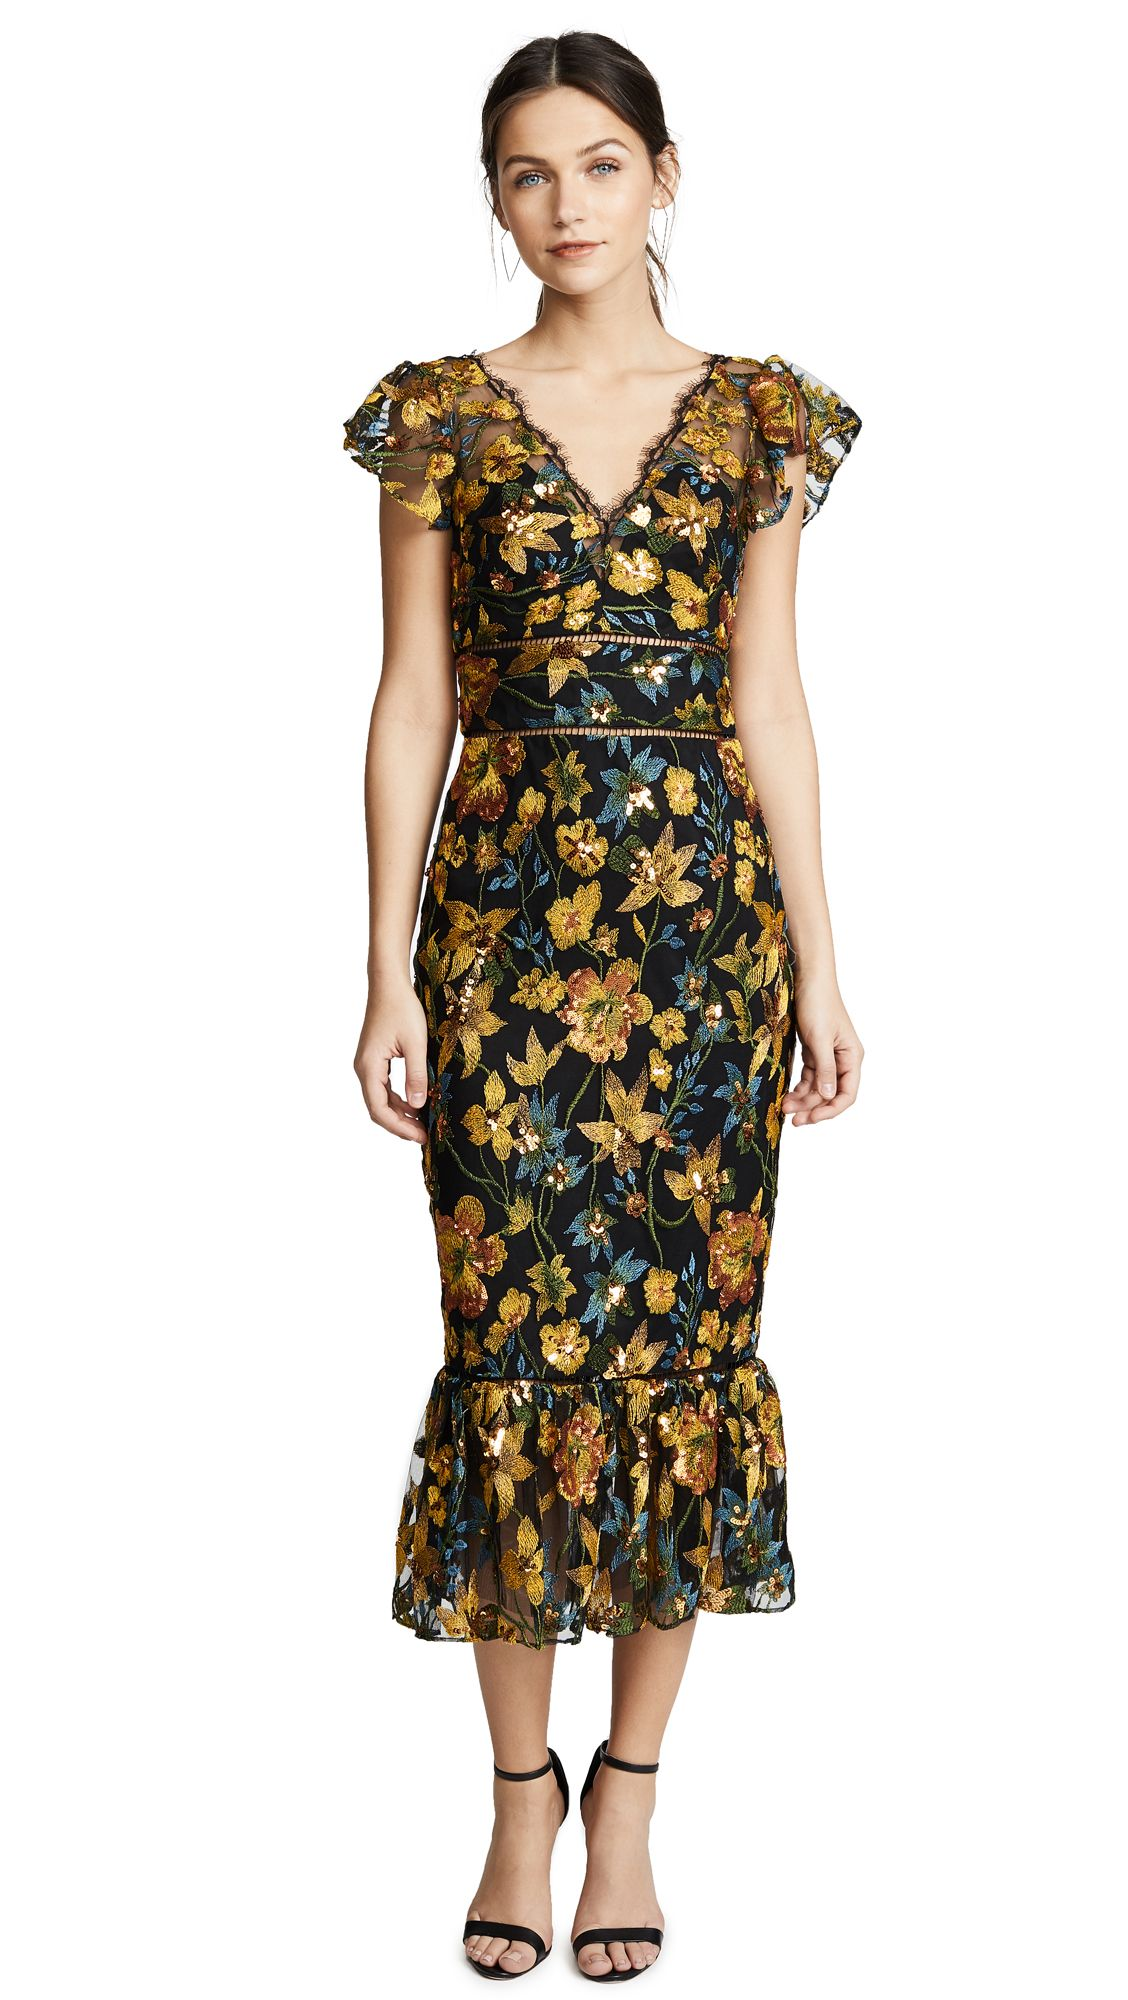 f5e5f6dd MARCHESA NOTTE EMBROIDERED COCKTAIL DRESS WITH FLUTTER SLEEVES. # marchesanotte #cloth #